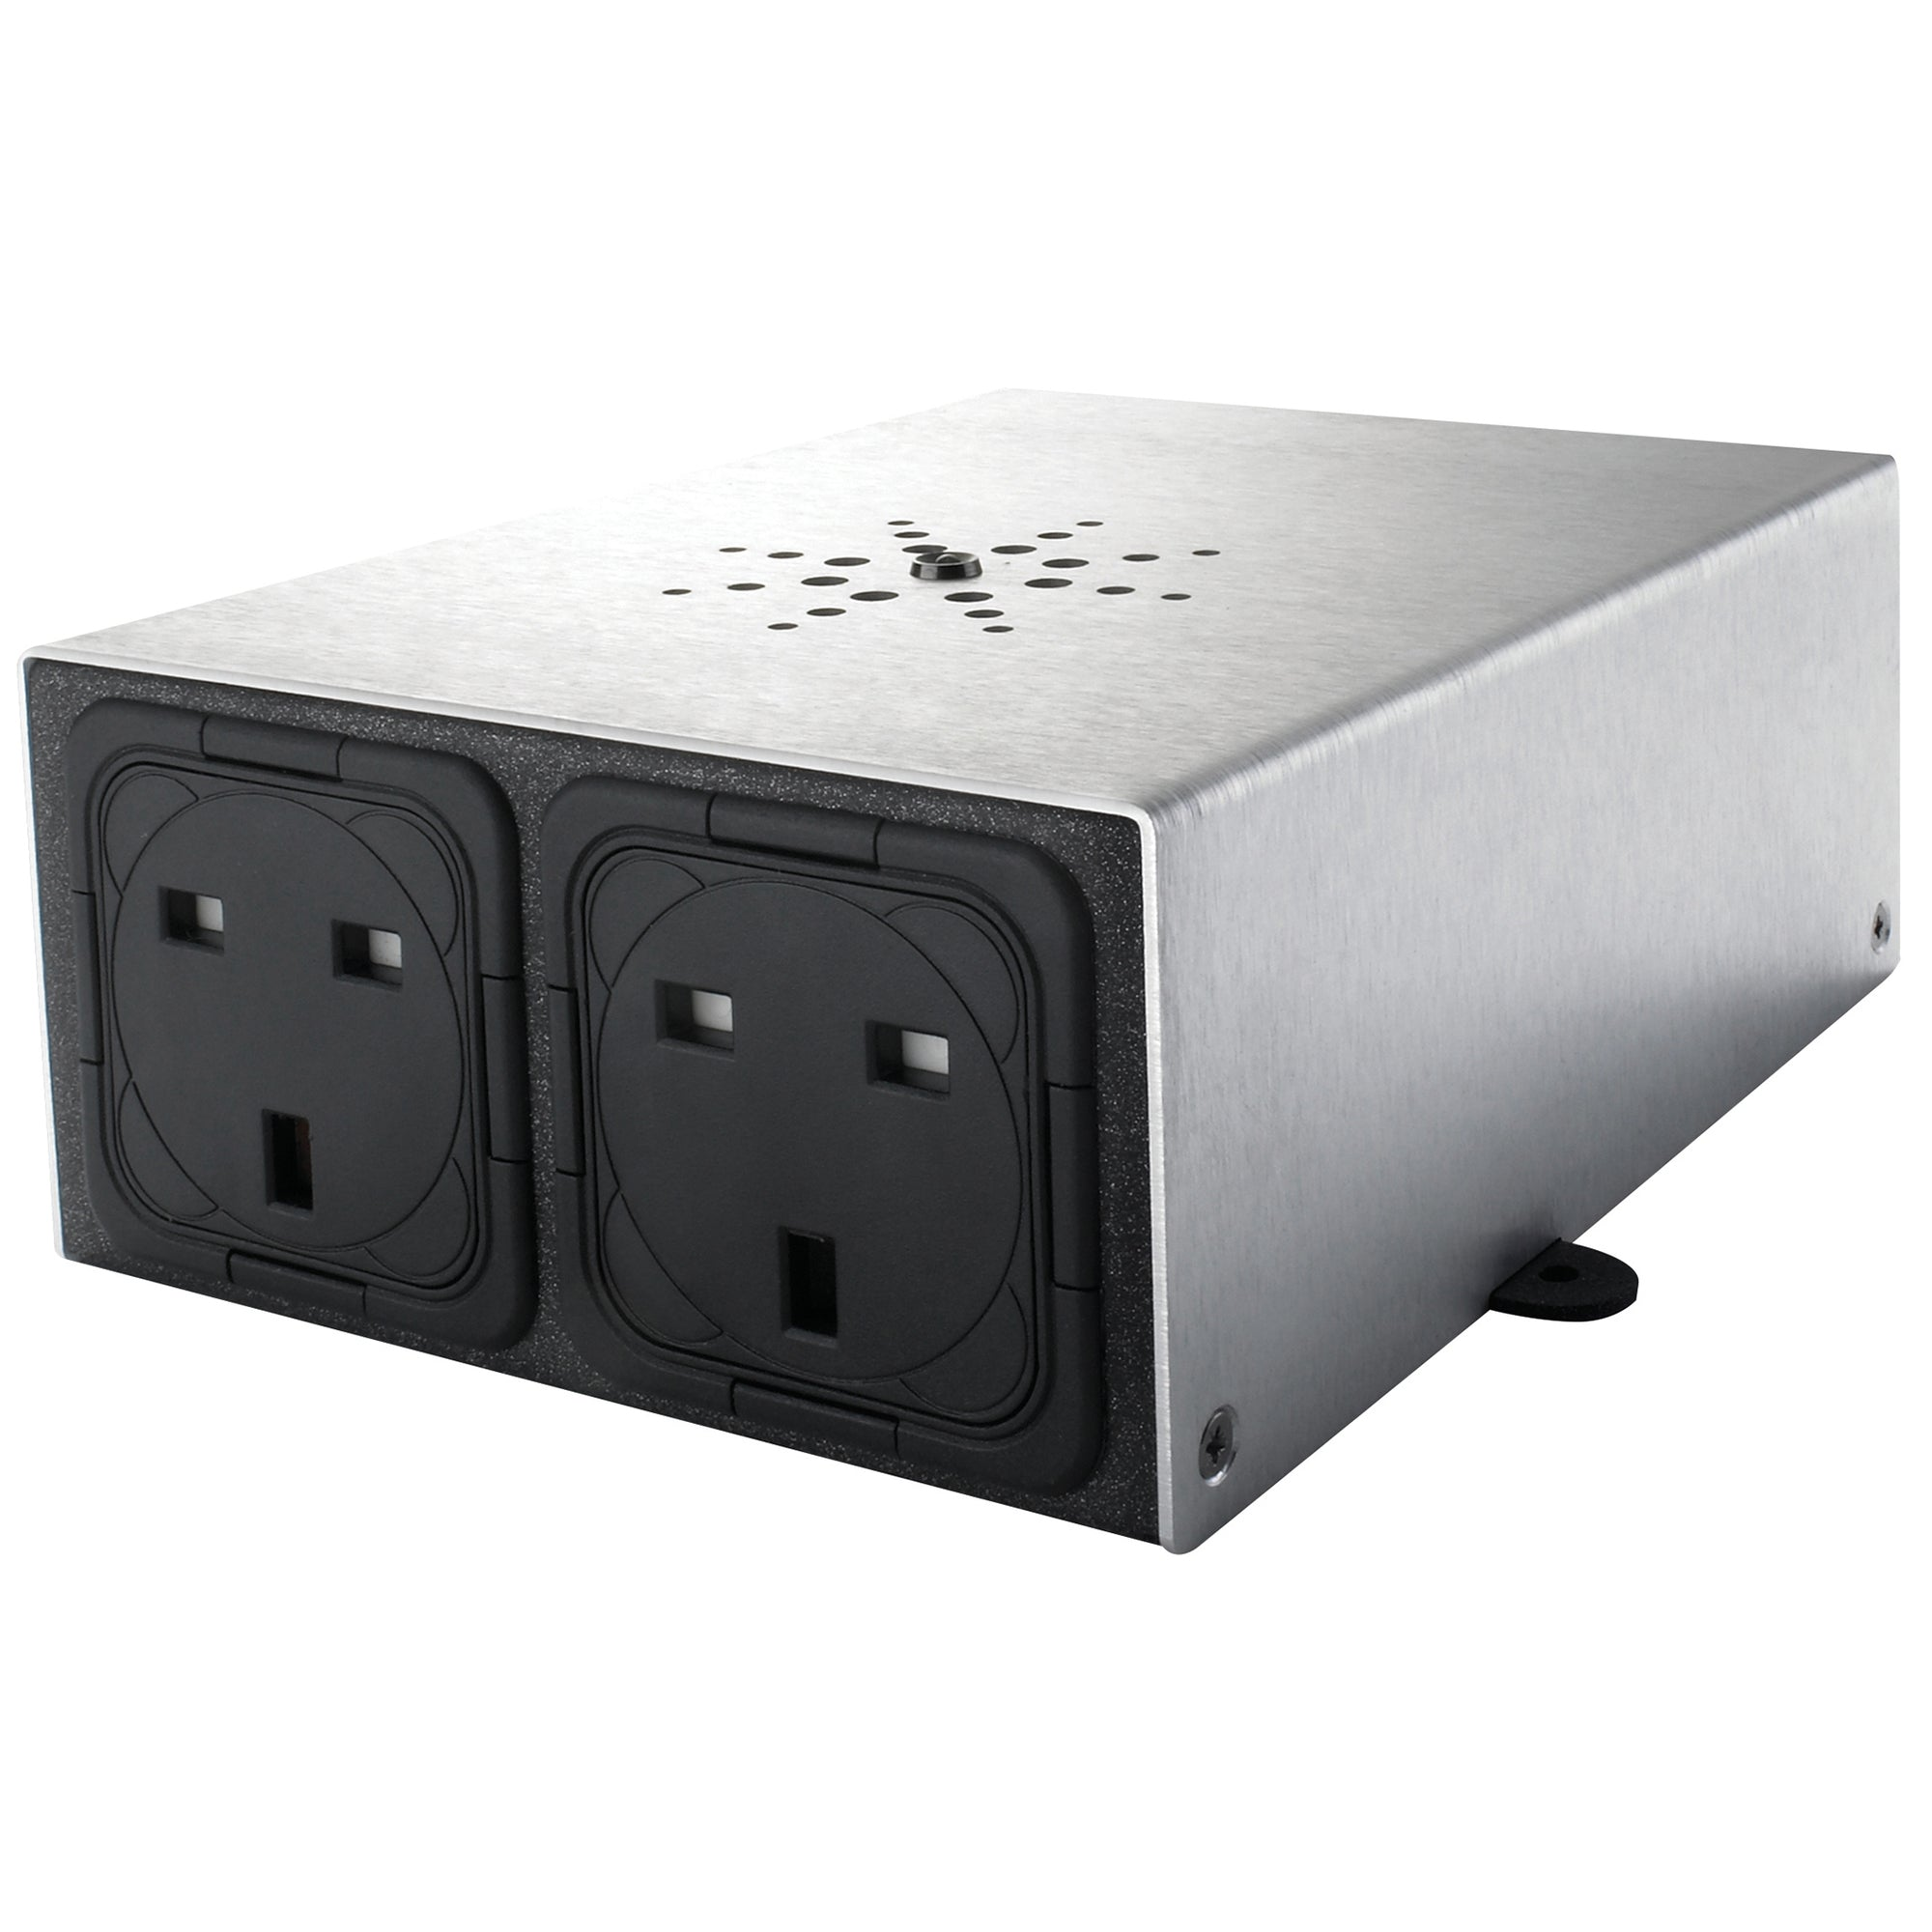 IsoTek EVO3 Power Conditioner Mini Mira AV 2-way